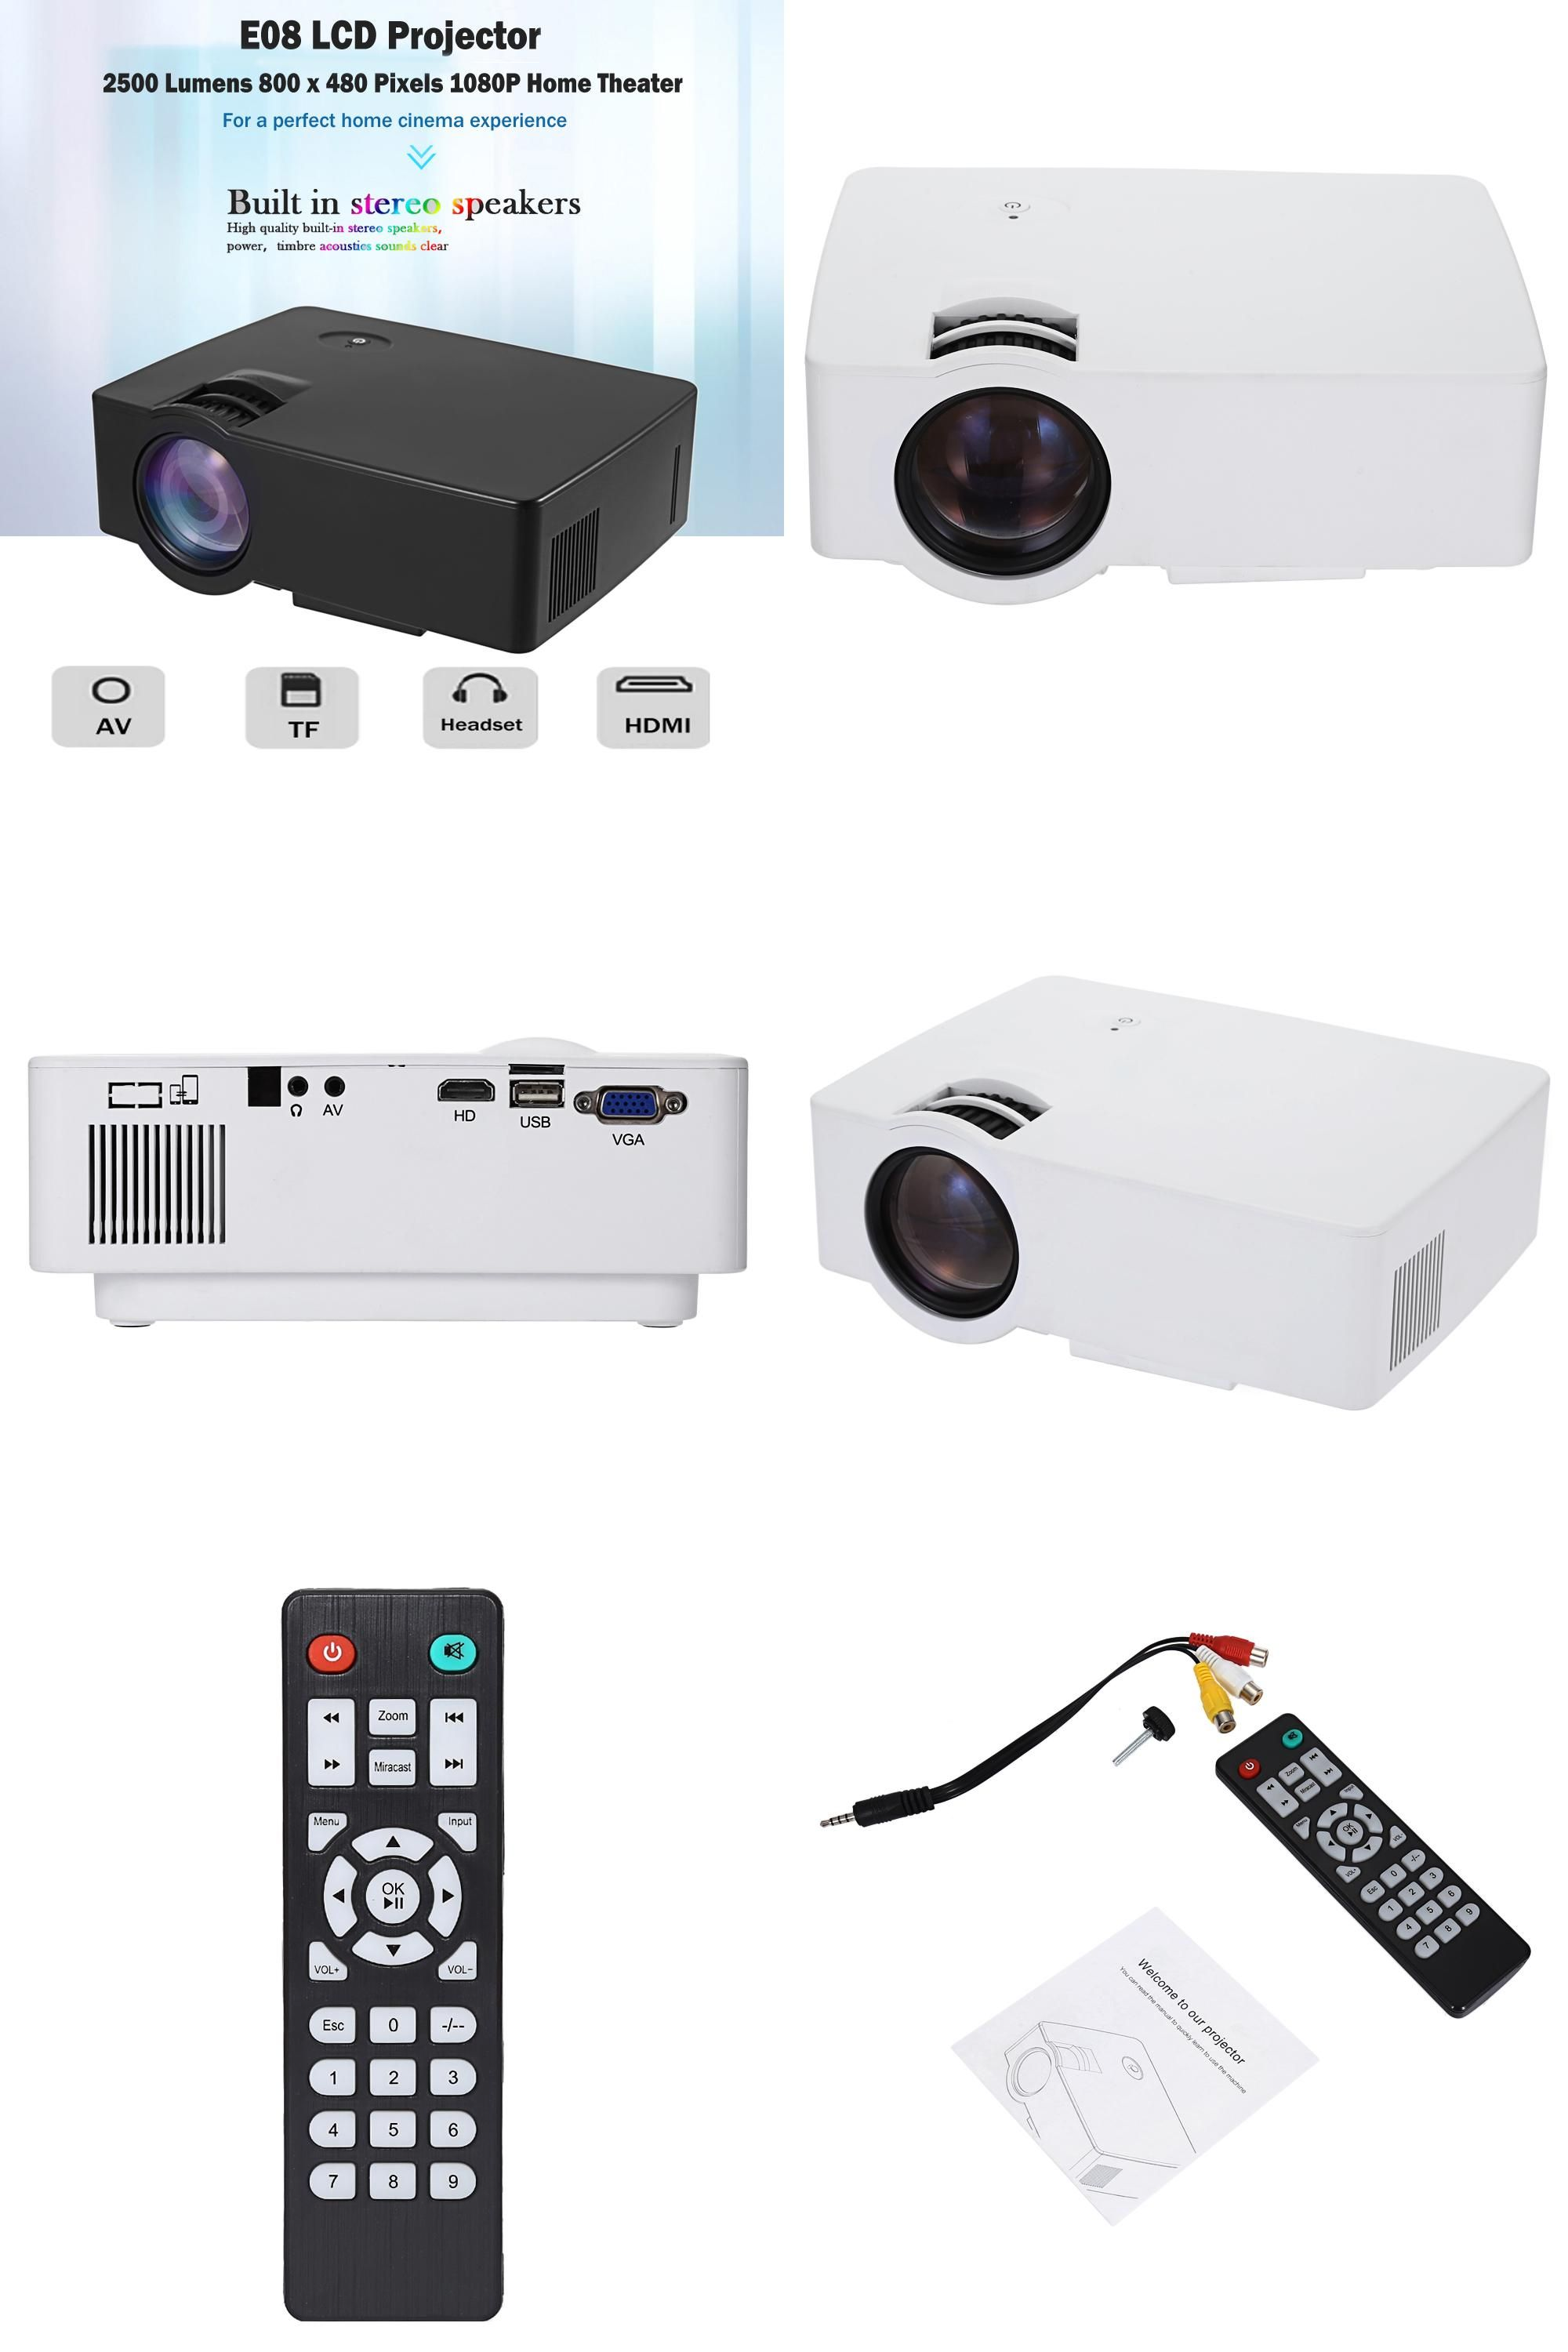 Lcd Projector 3d Panasonic Full Hd Pt At6000e Epson Eh Tw570 Home Theatre Tw6100w Visit To Buy Genuine E08 Best Theater